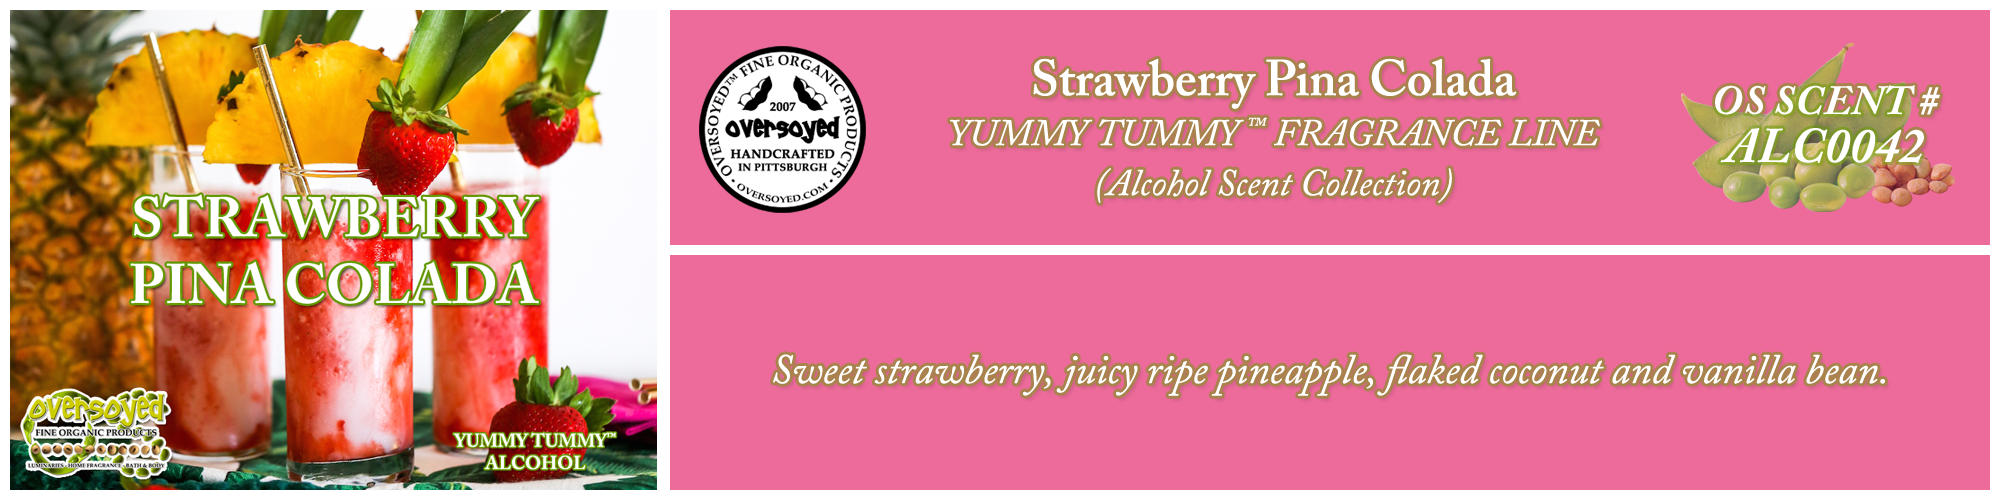 Strawberry Pina Colada Handcrafted Products Collection